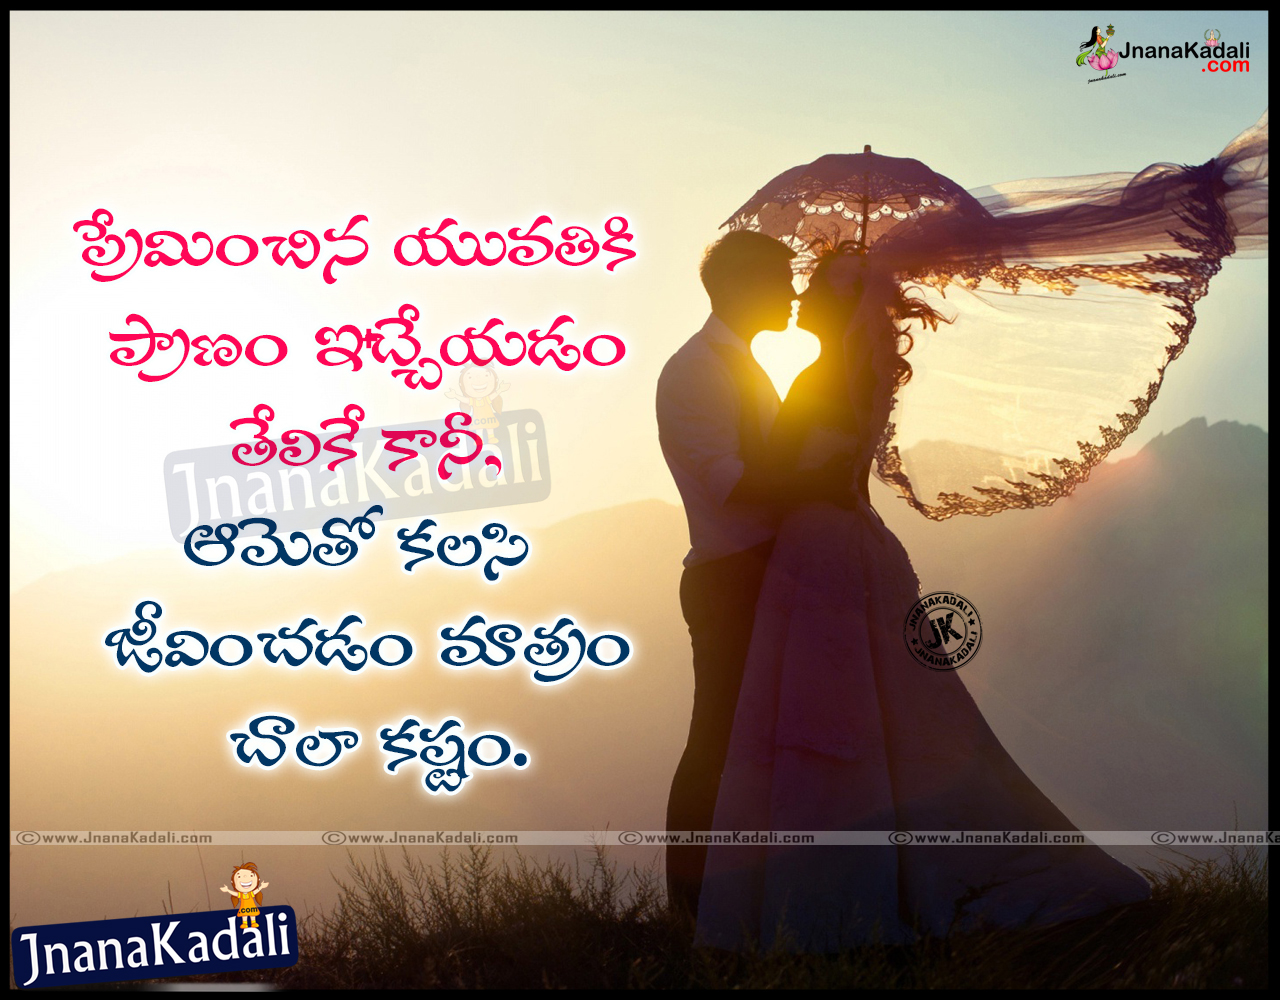 Telugu Love Quotes Best Telugu Love Quotes With Love Hd Wallpapers  Jnana Kadali